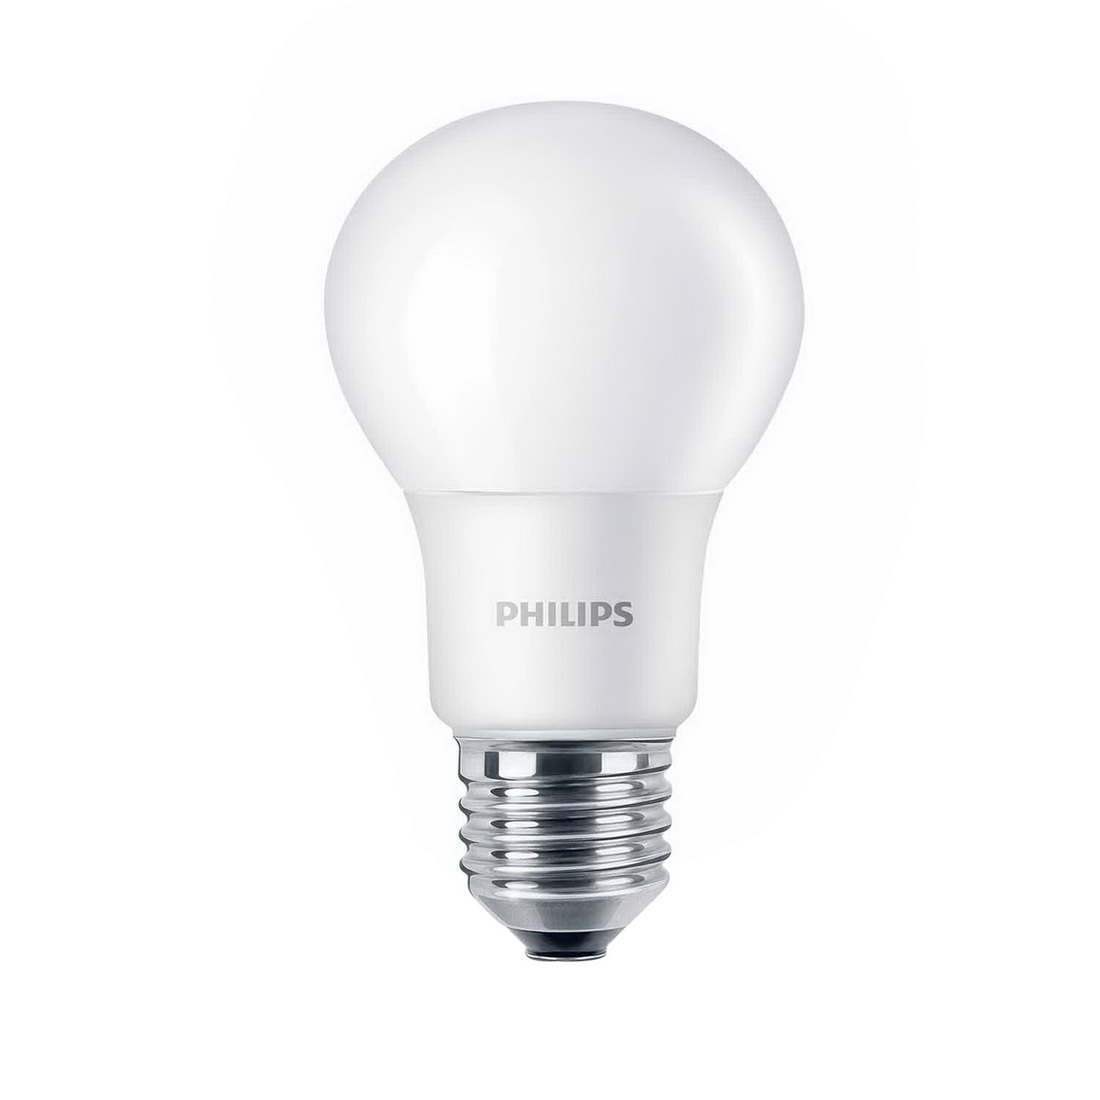 Ezi Living 10W 1020lm E27 6500K Generation 8 A60 Non-Dimmable LED Bulb Cool Daylight